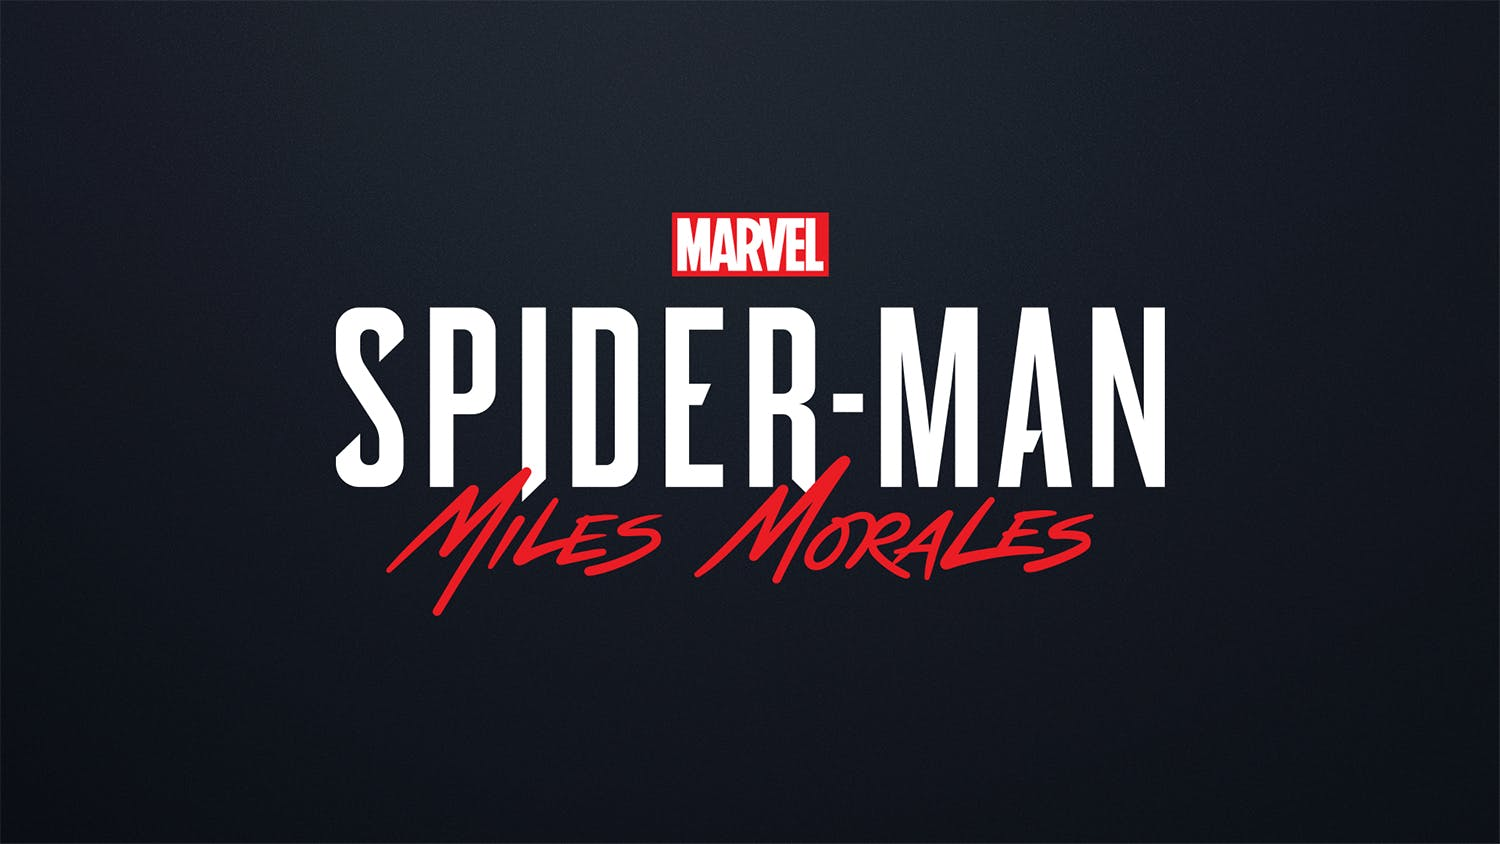 PS5 - Marvel Spider-Man: Miles Morales